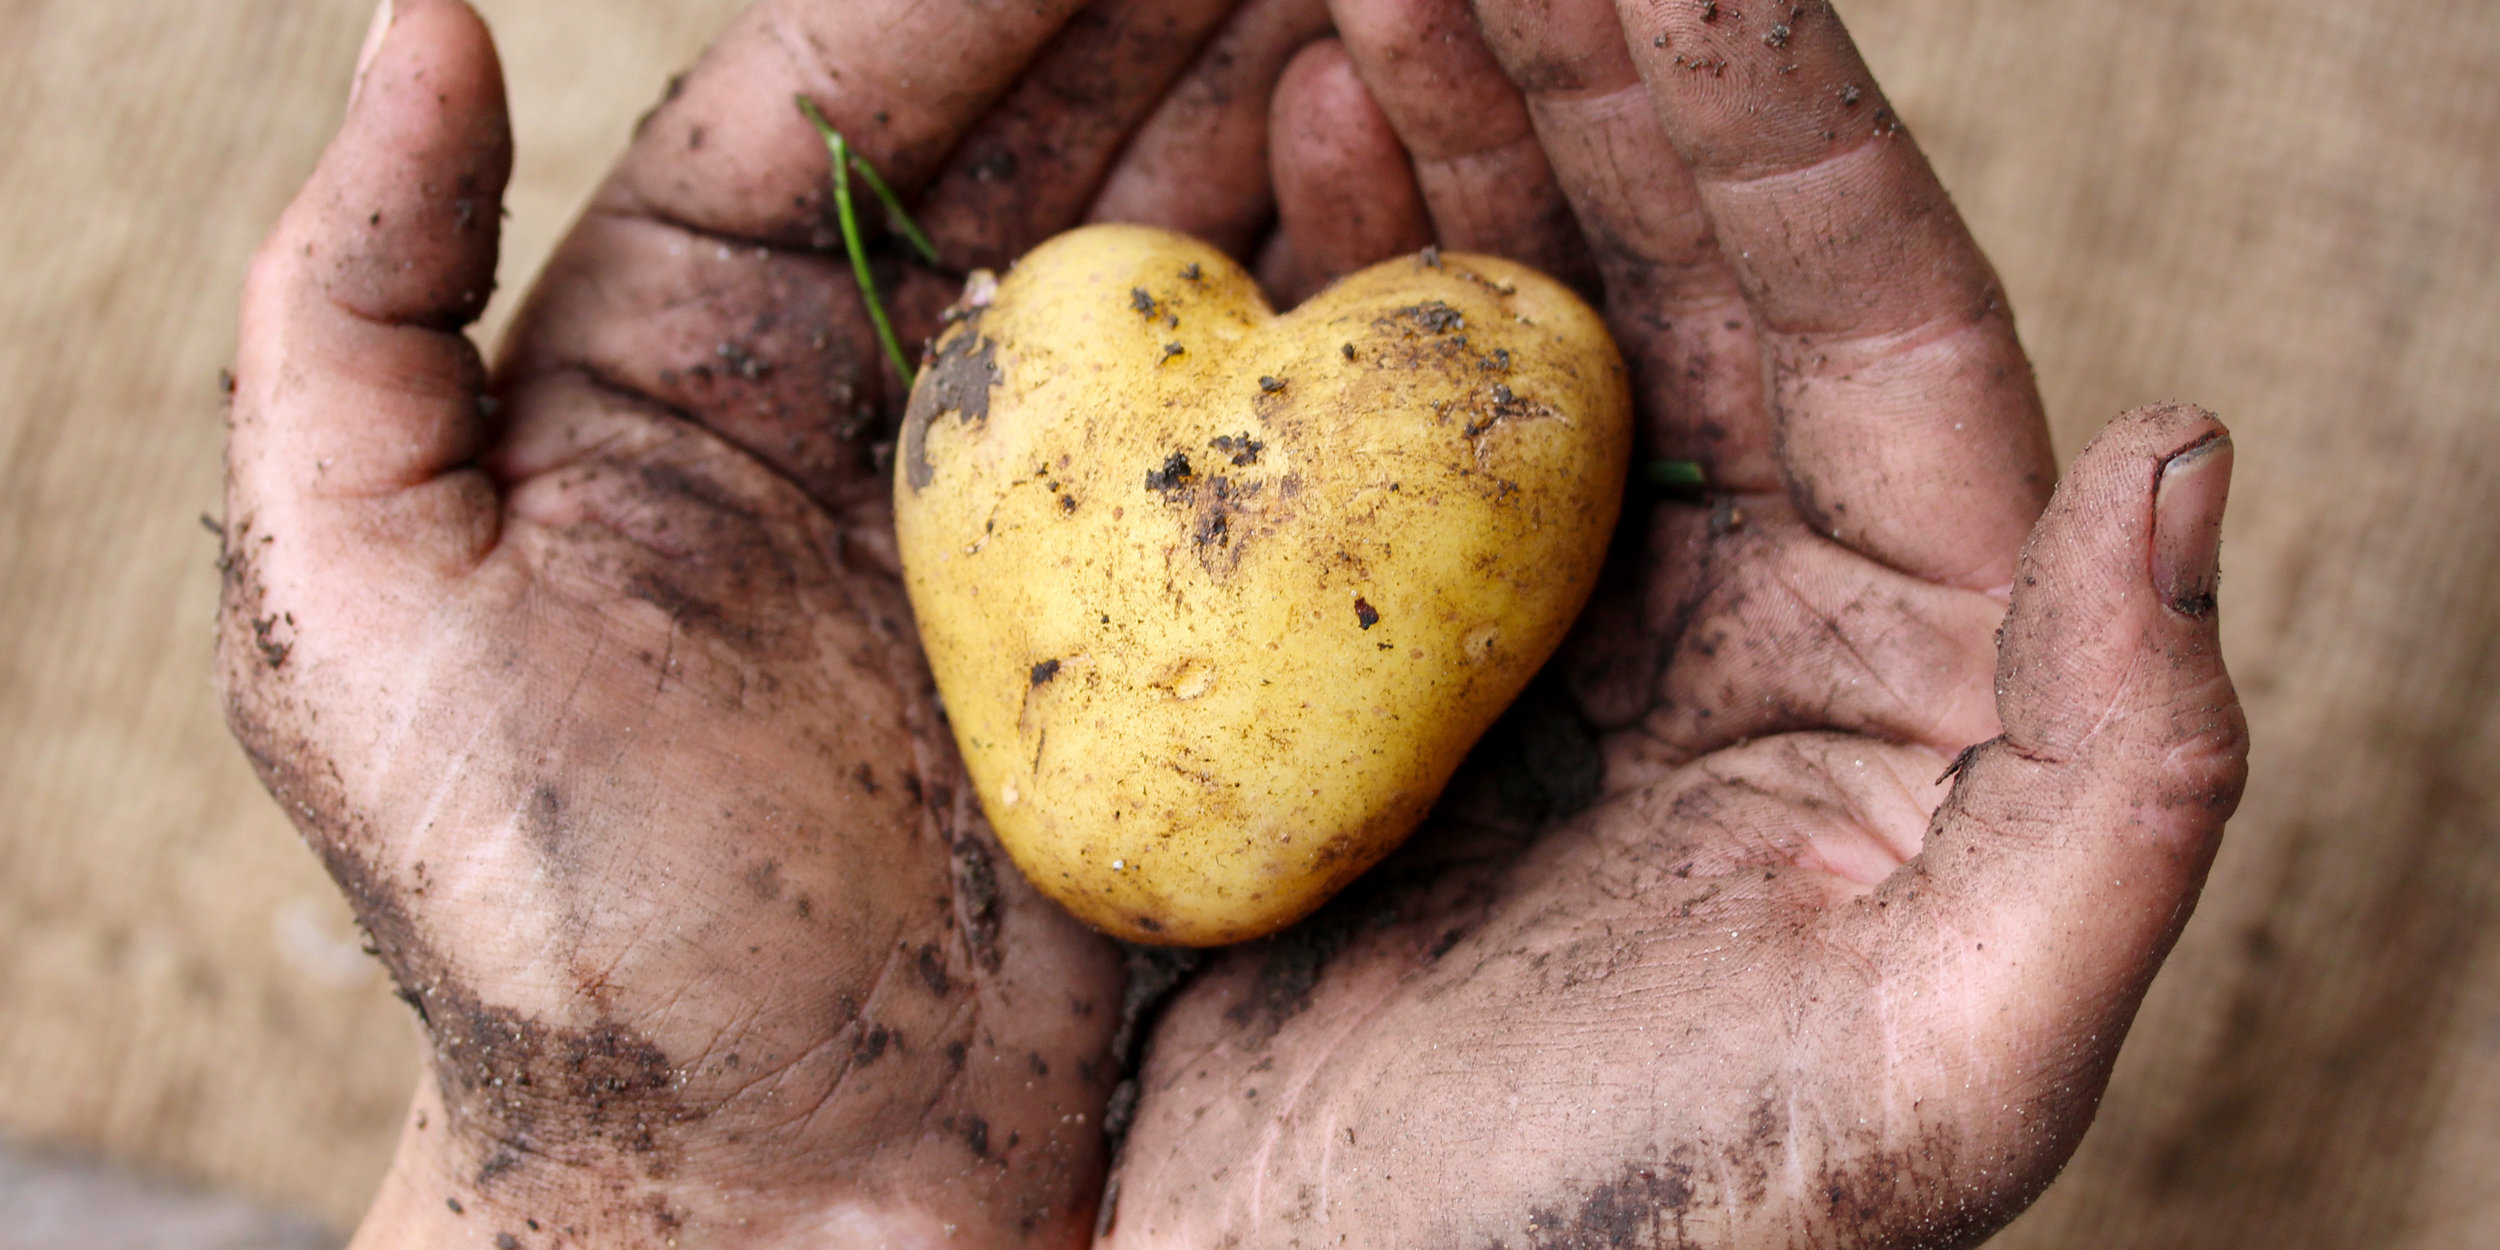 The prodigious potato, along with other starchy root vegetables, may have been the key to the rapid growth of the human brain, leading to greater cognitive function and eventually, the invention of Sudoku.